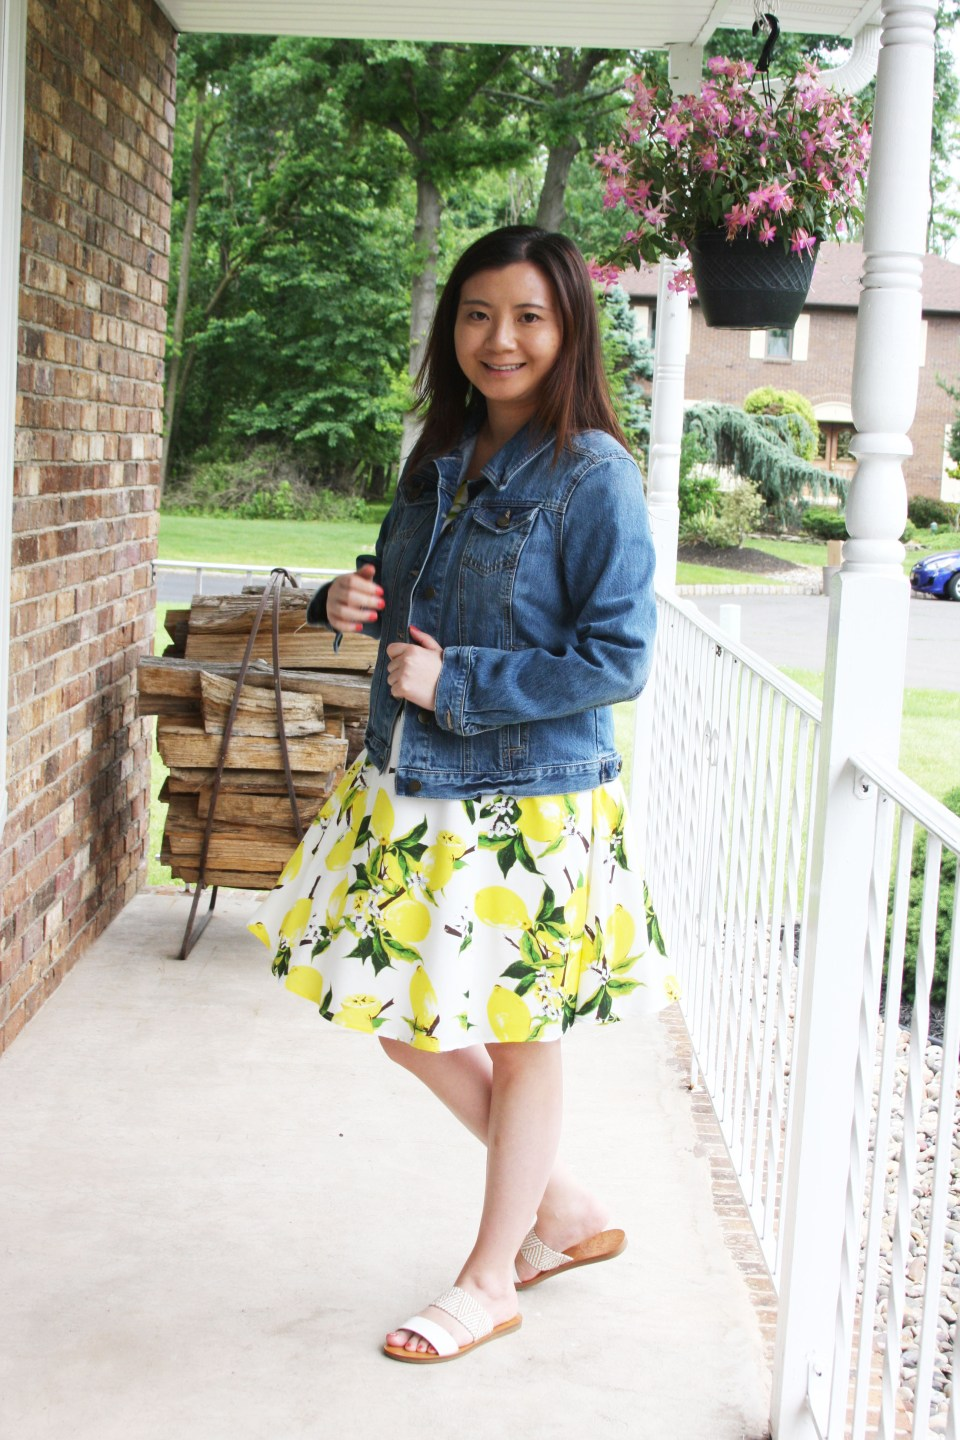 Lemon Print Dress + Denim Jacket 5